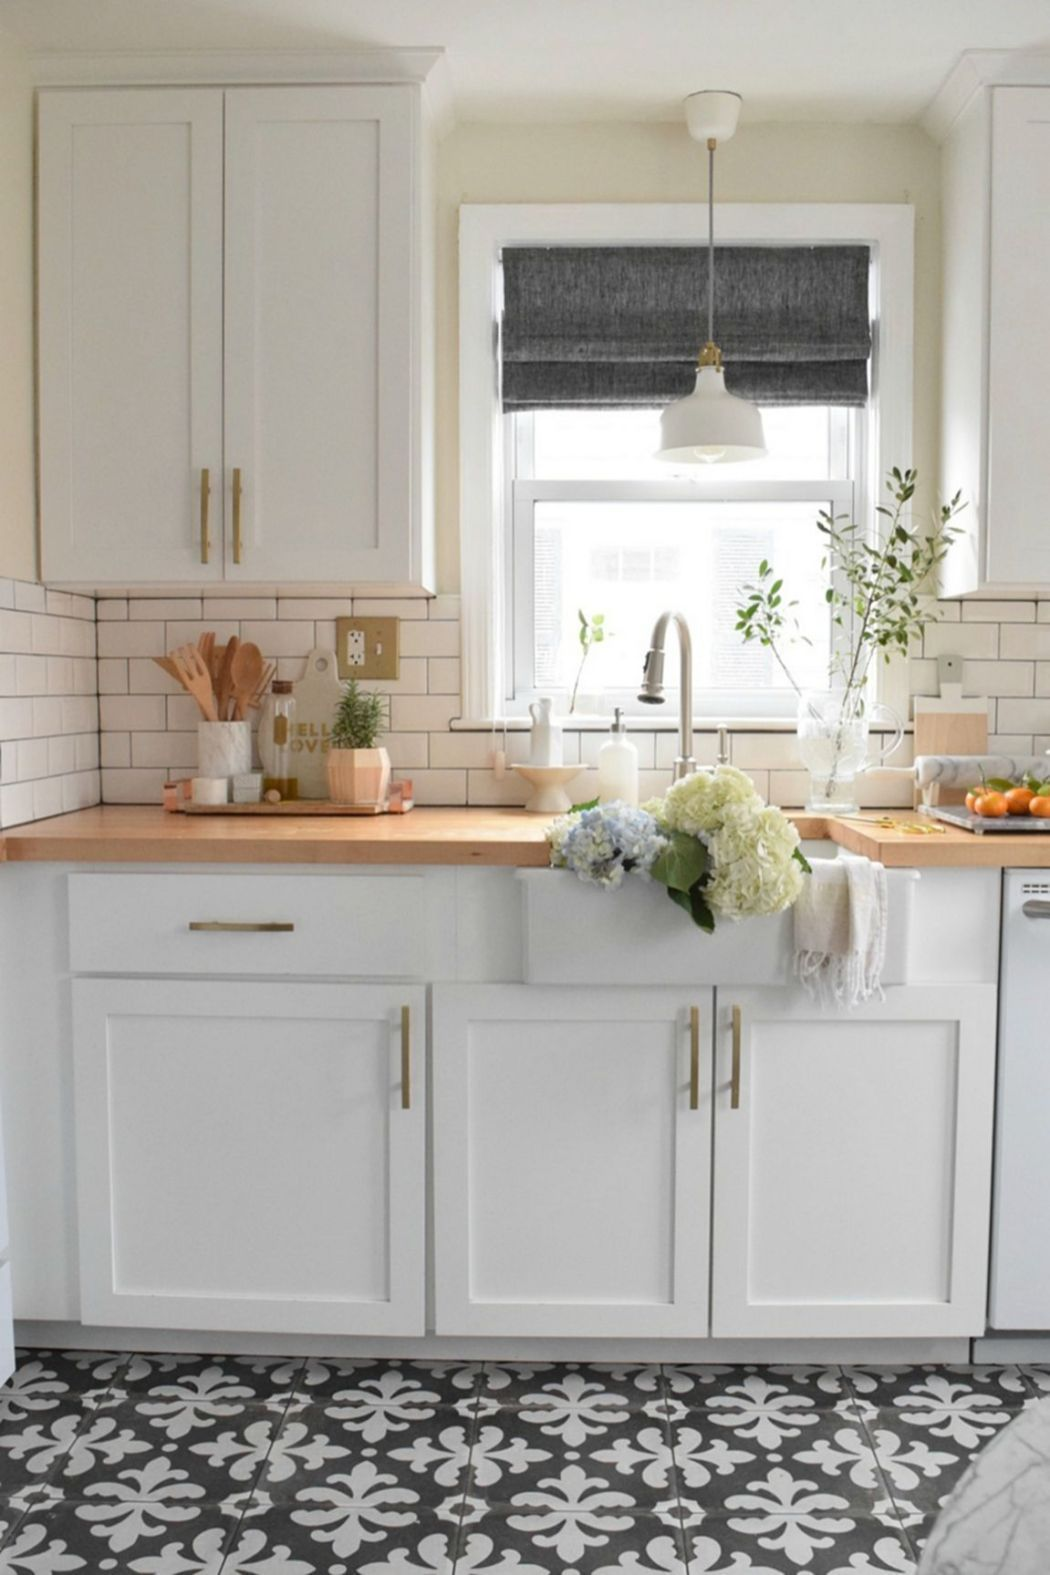 Cute Small Kitchen With Concrete Patterned Tile Floor, White Cabinets, Gold Or Brass Hardware, Butcher Block Wood Countertop And Subway Tile Backsplash #Smallkitchen #Butcherblock #Concretetile